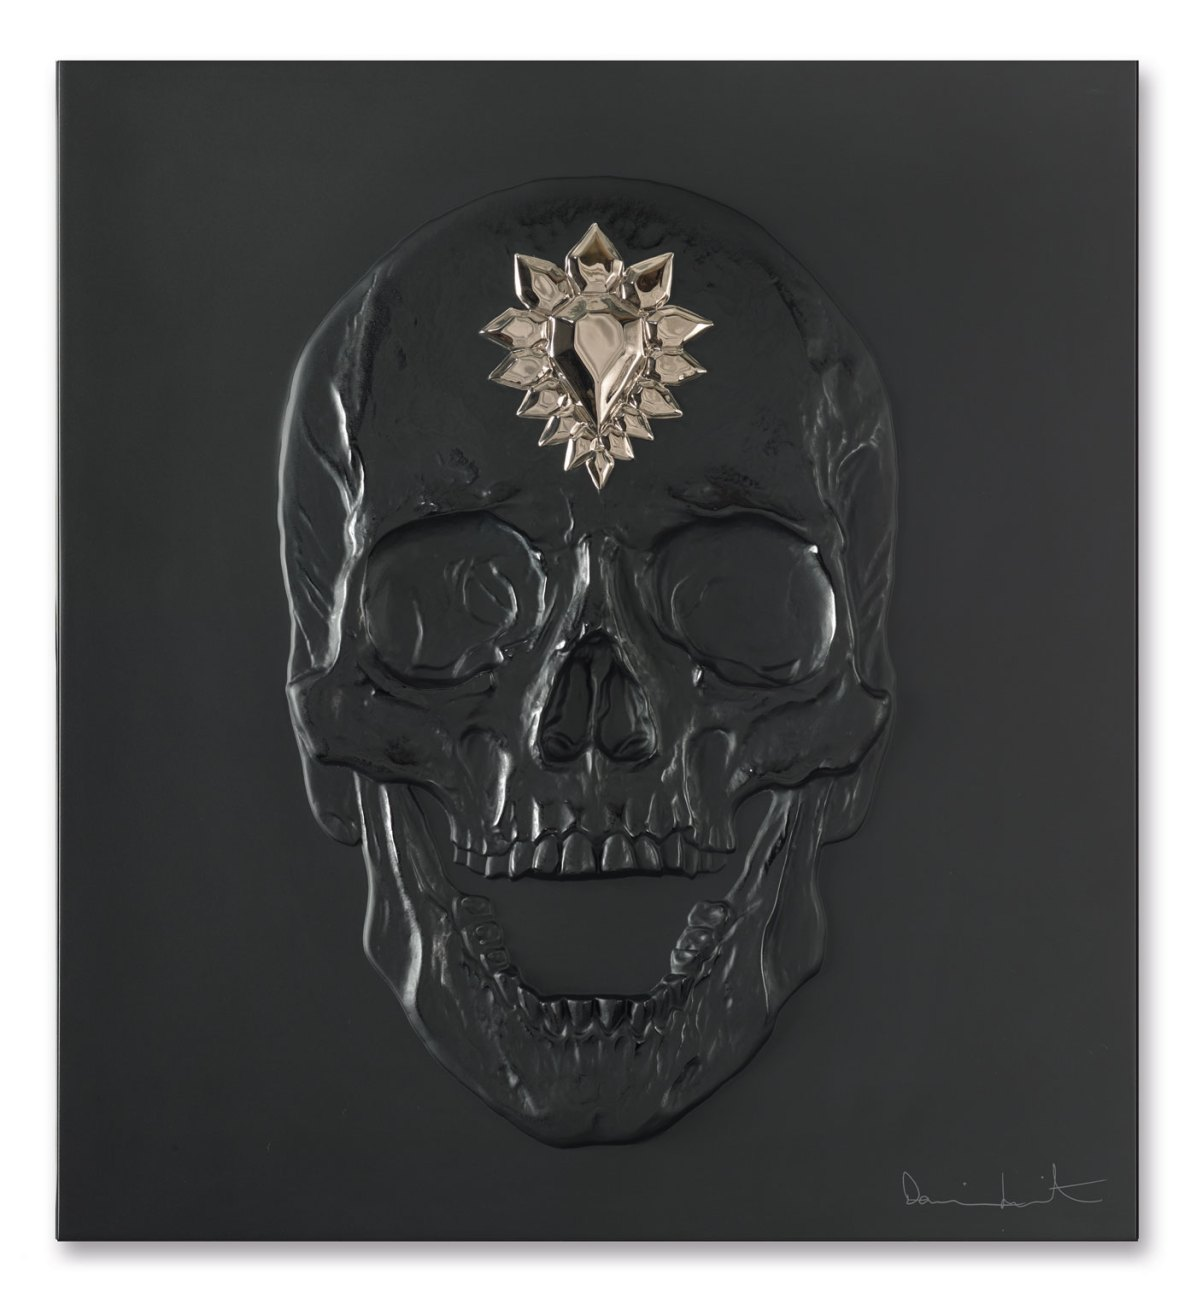 HD-88059107-ETERNAL-MEMENTO-Black-and-Platinum-Photo-François-Fernandez-©-Damien-Hirst-Science-Ltd-and-Lalique